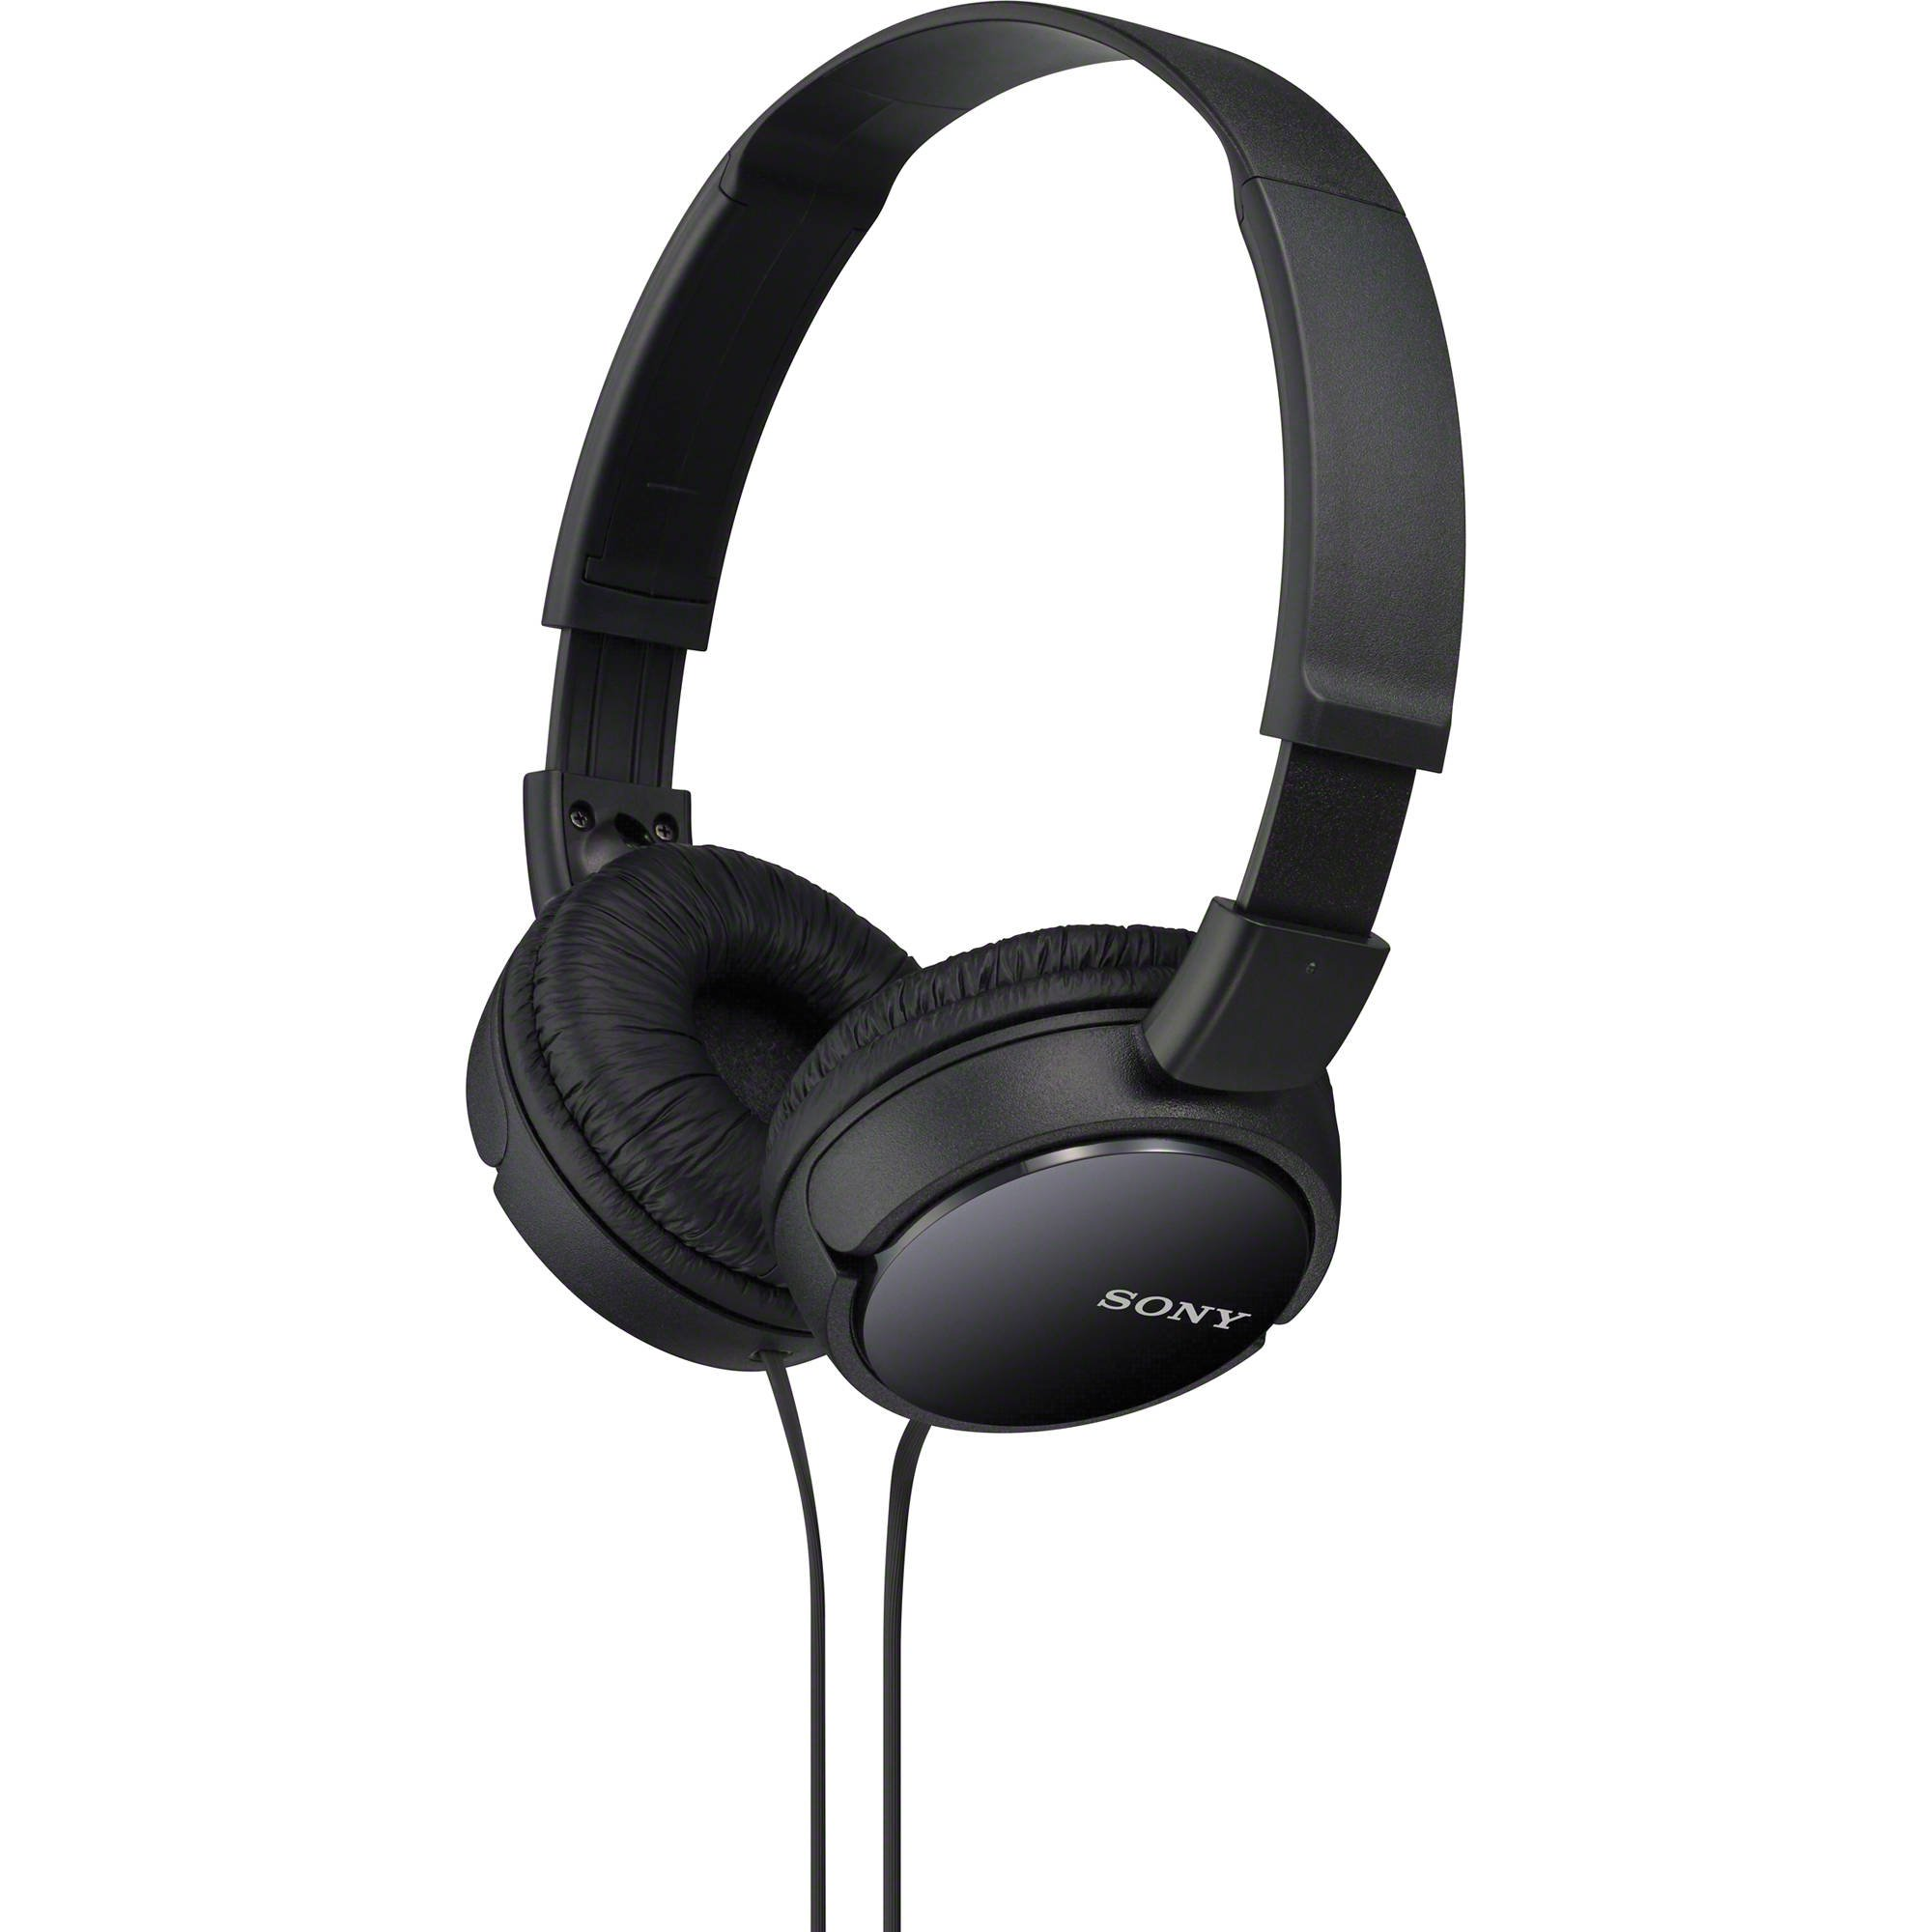 Sony Slim Lightweight Dynamic Studio Monitor Stereo Headphones with Pressure Relieving Earpads, Swivel Earcups, High Power Neodymium Magnets, 30mm Deep Bass Drivers, Multi-Layer Dome Diaphragms and a Noise-Reducing Closed Supra-Aural Design - Black - Comp